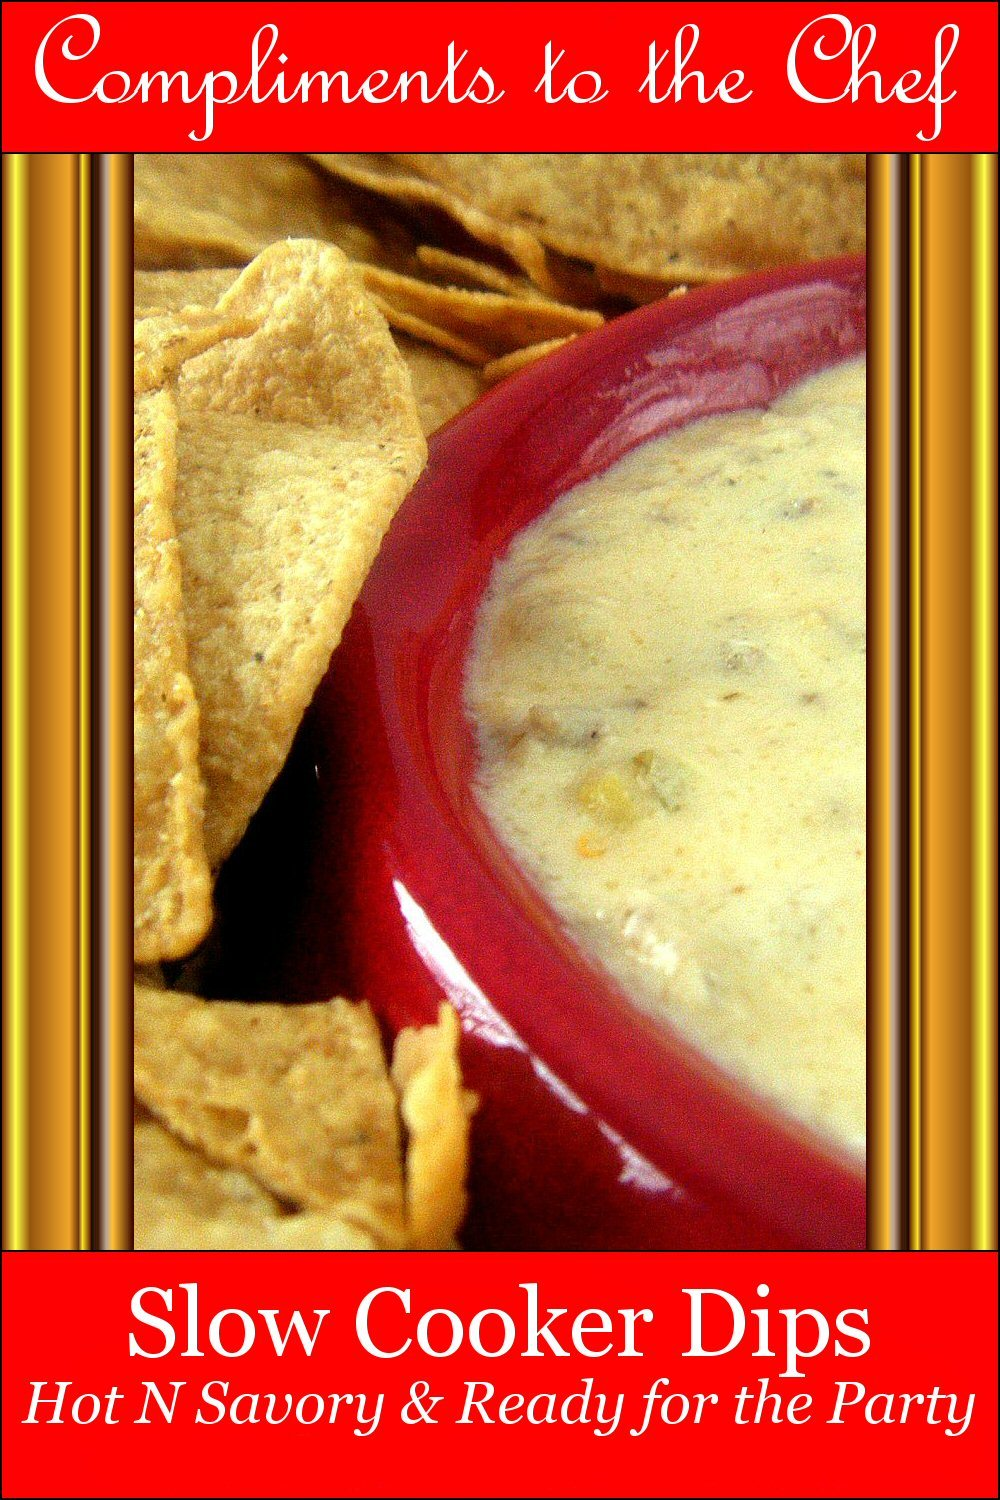 Slow Cooker Dips: Hot N Savory & Ready for the Party